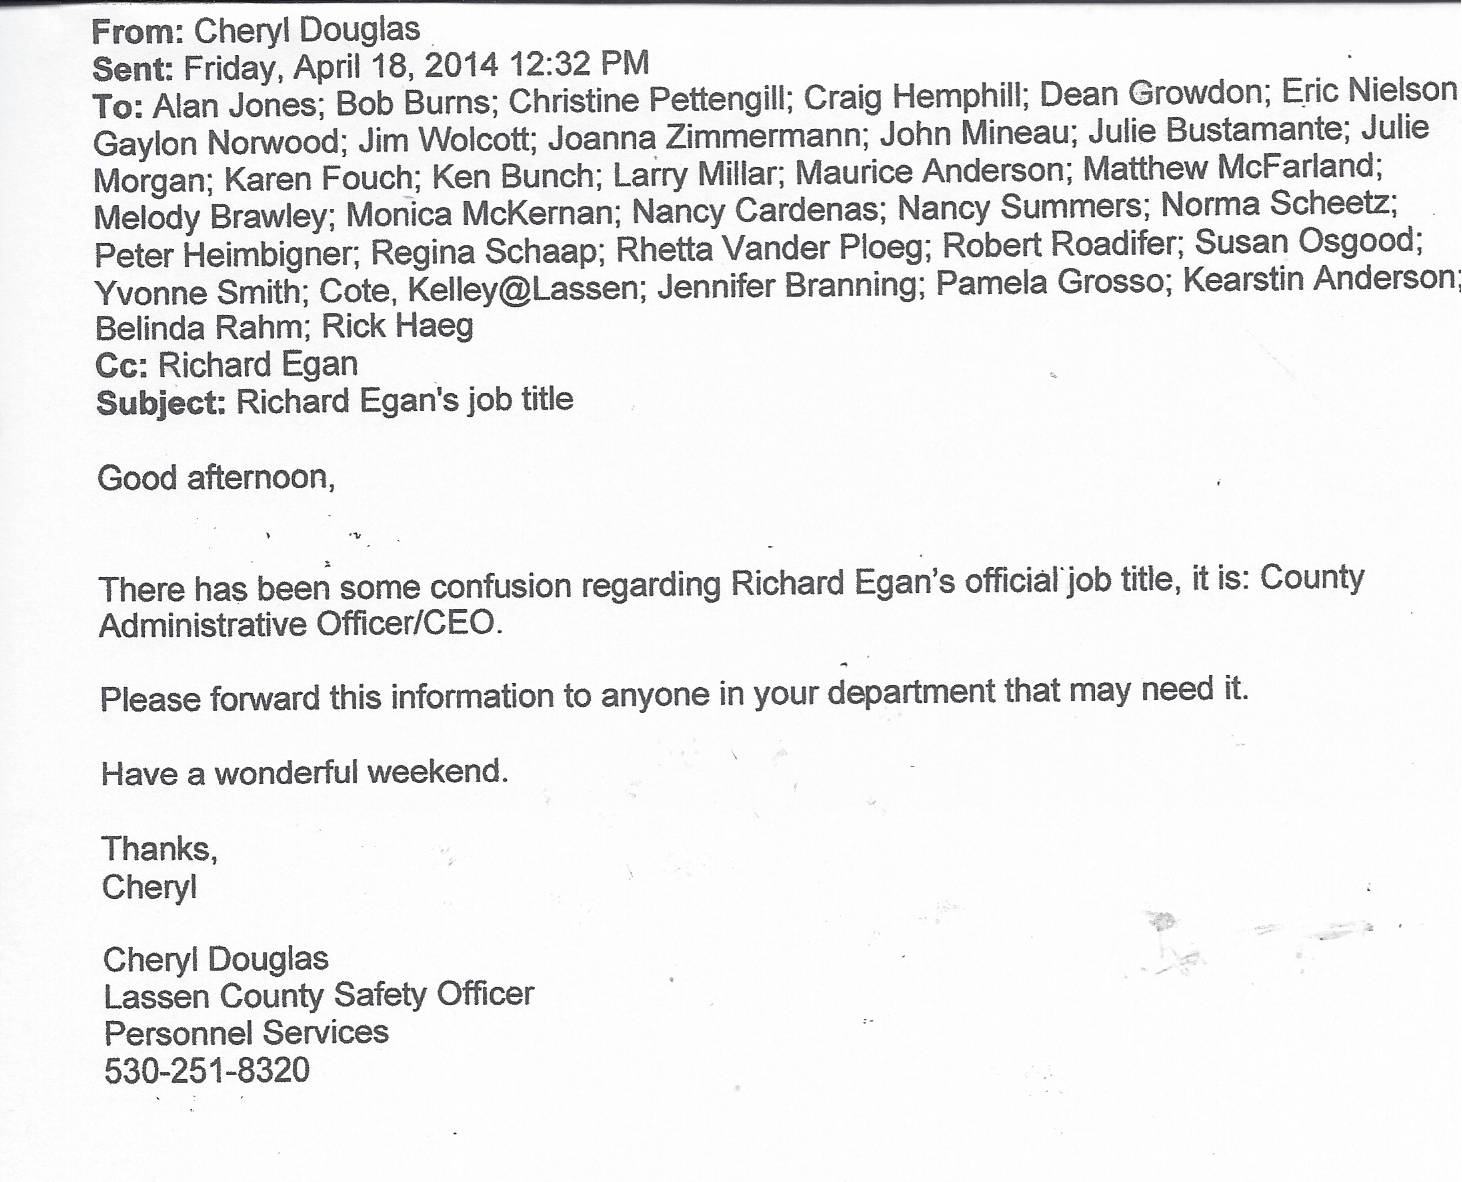 pleasant valley lesbian personals Meetups in pleasant valley these are just some of the different kinds of meetup groups you can find near pleasant valley sign me up.